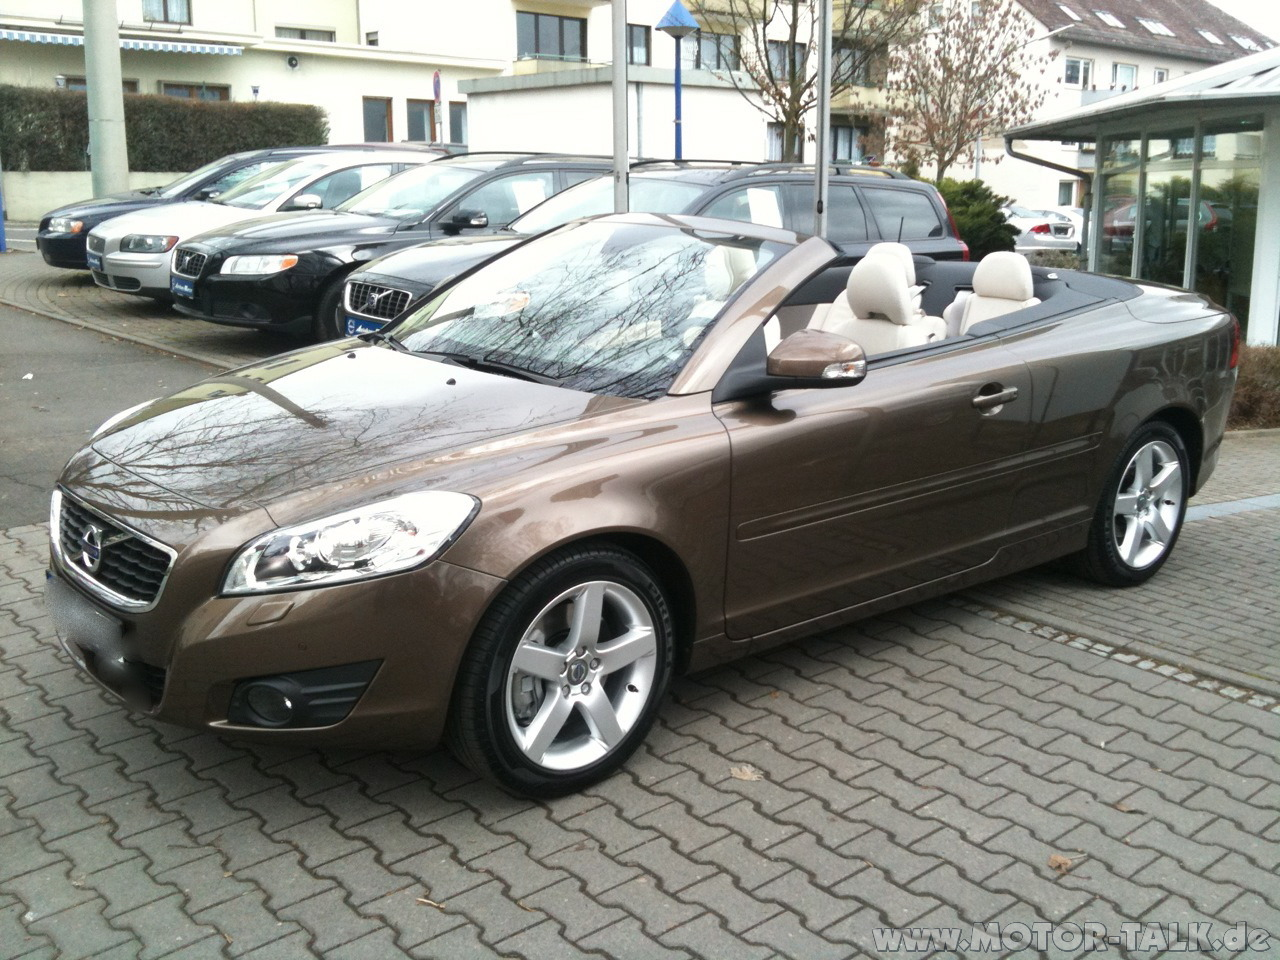 foto xc 90 my 2012 farbe twilight bronze volvo s60 2. Black Bedroom Furniture Sets. Home Design Ideas